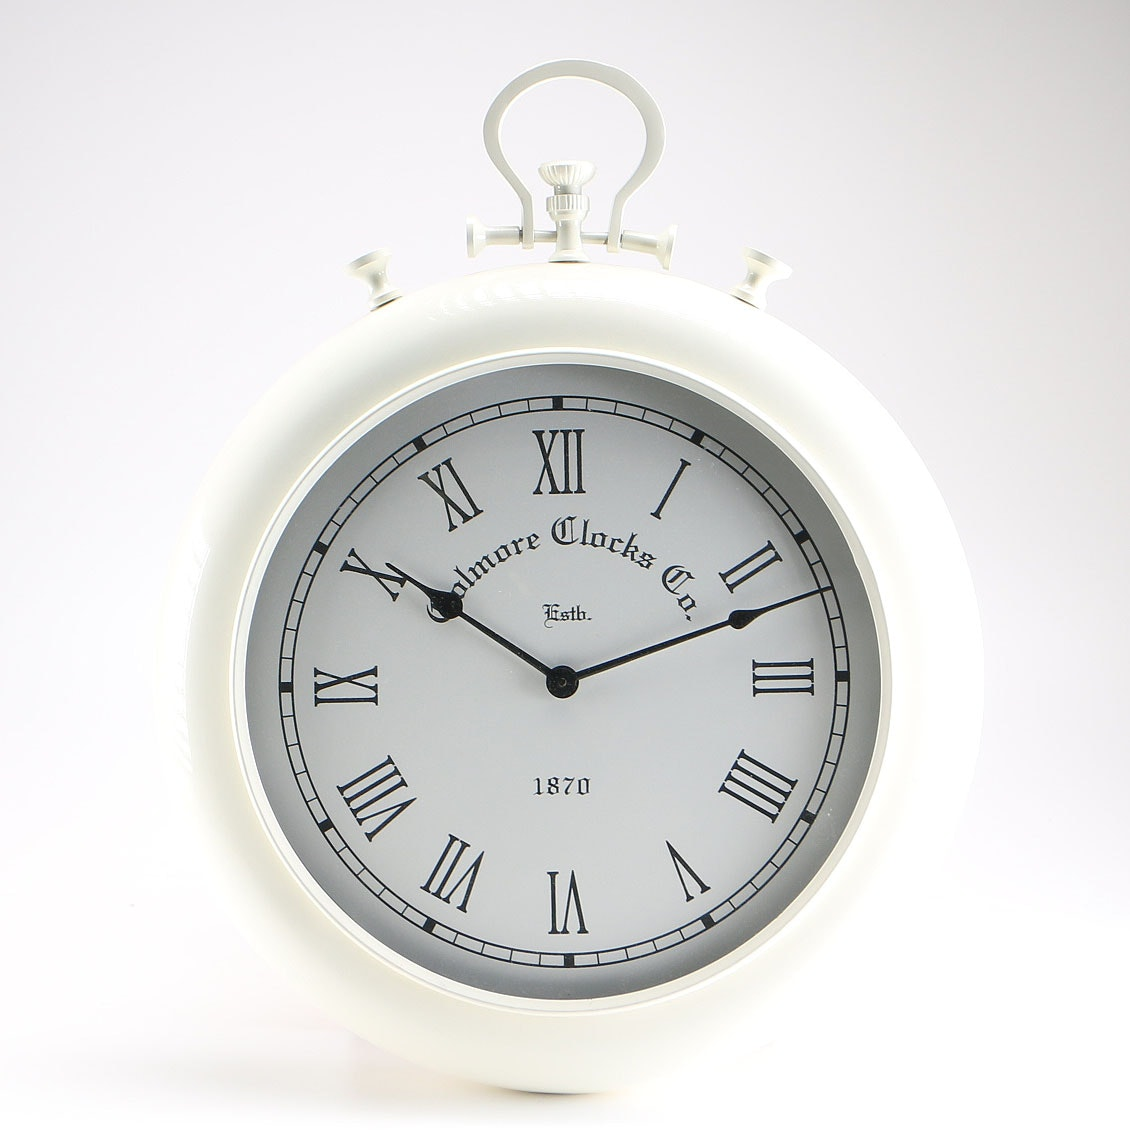 colmore clocks co pocket watch wall clock